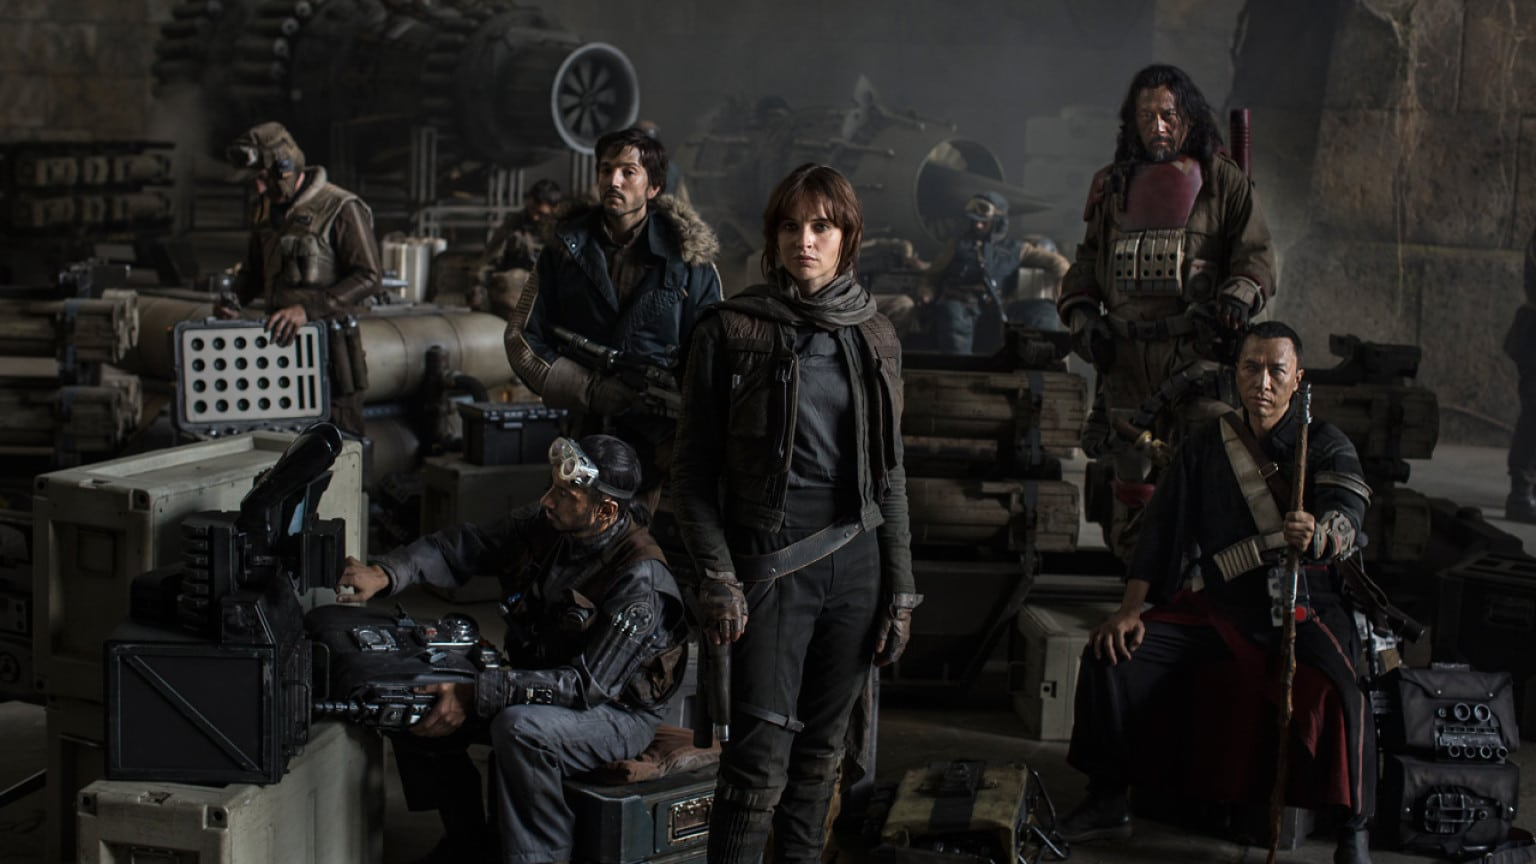 star-wars-rogue-one-cast1 Rogue One: A Star Wars Story